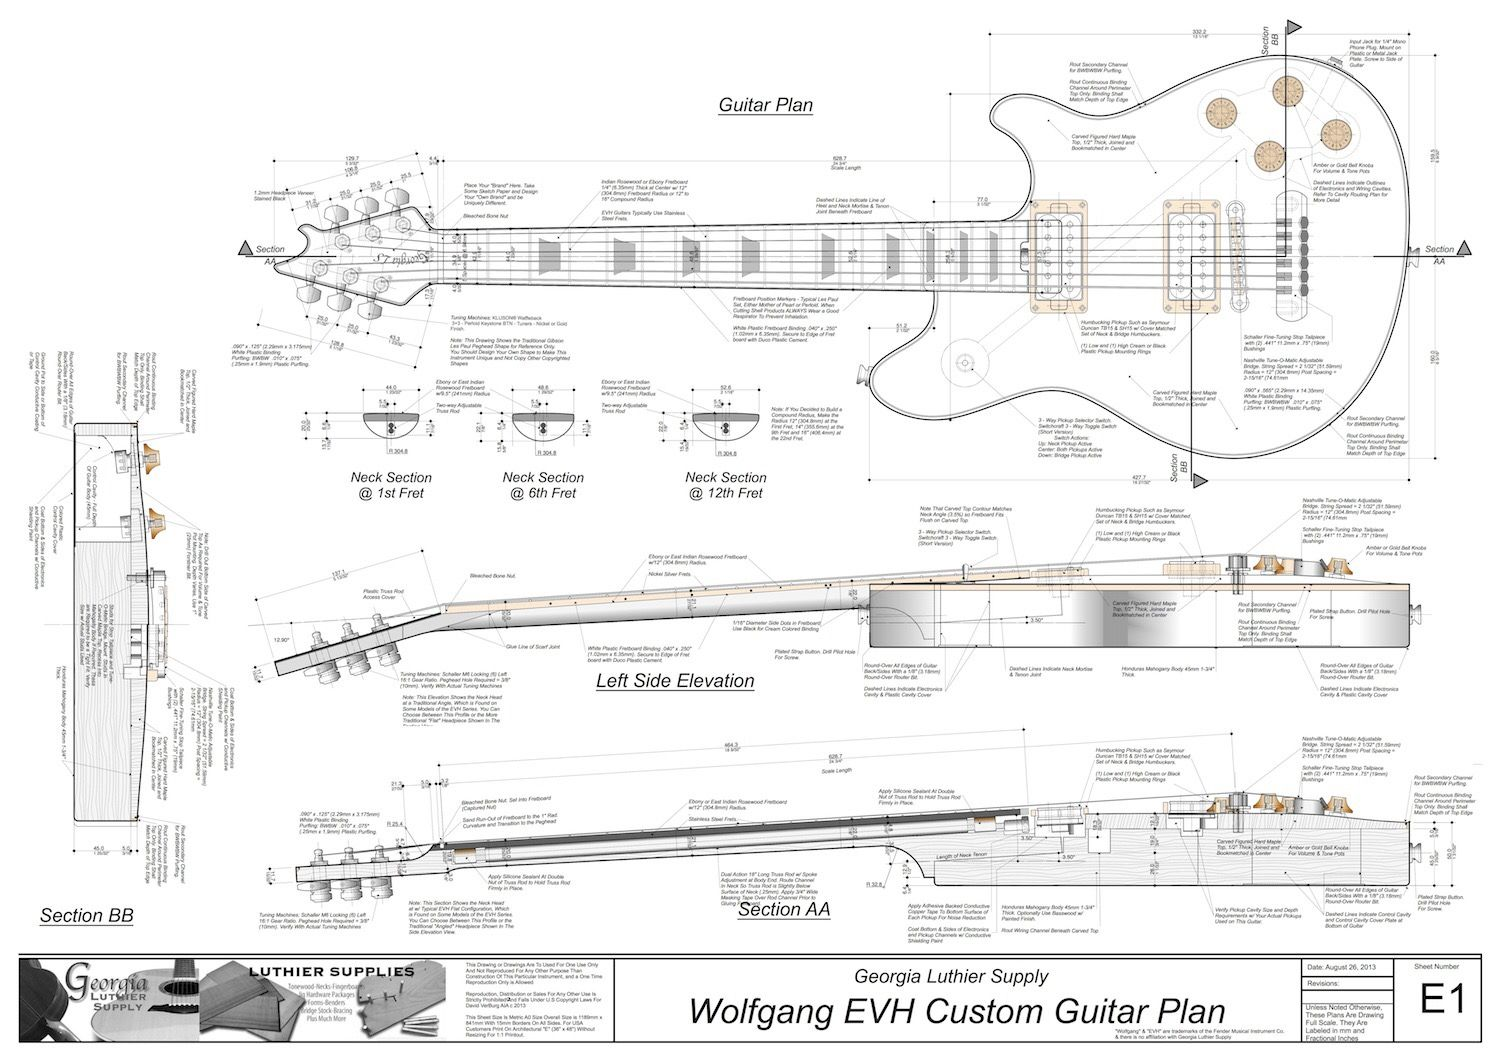 Marvelous Wrg 9159 Evh Wiring Diagram Wiring Cloud Uslyletkolfr09Org